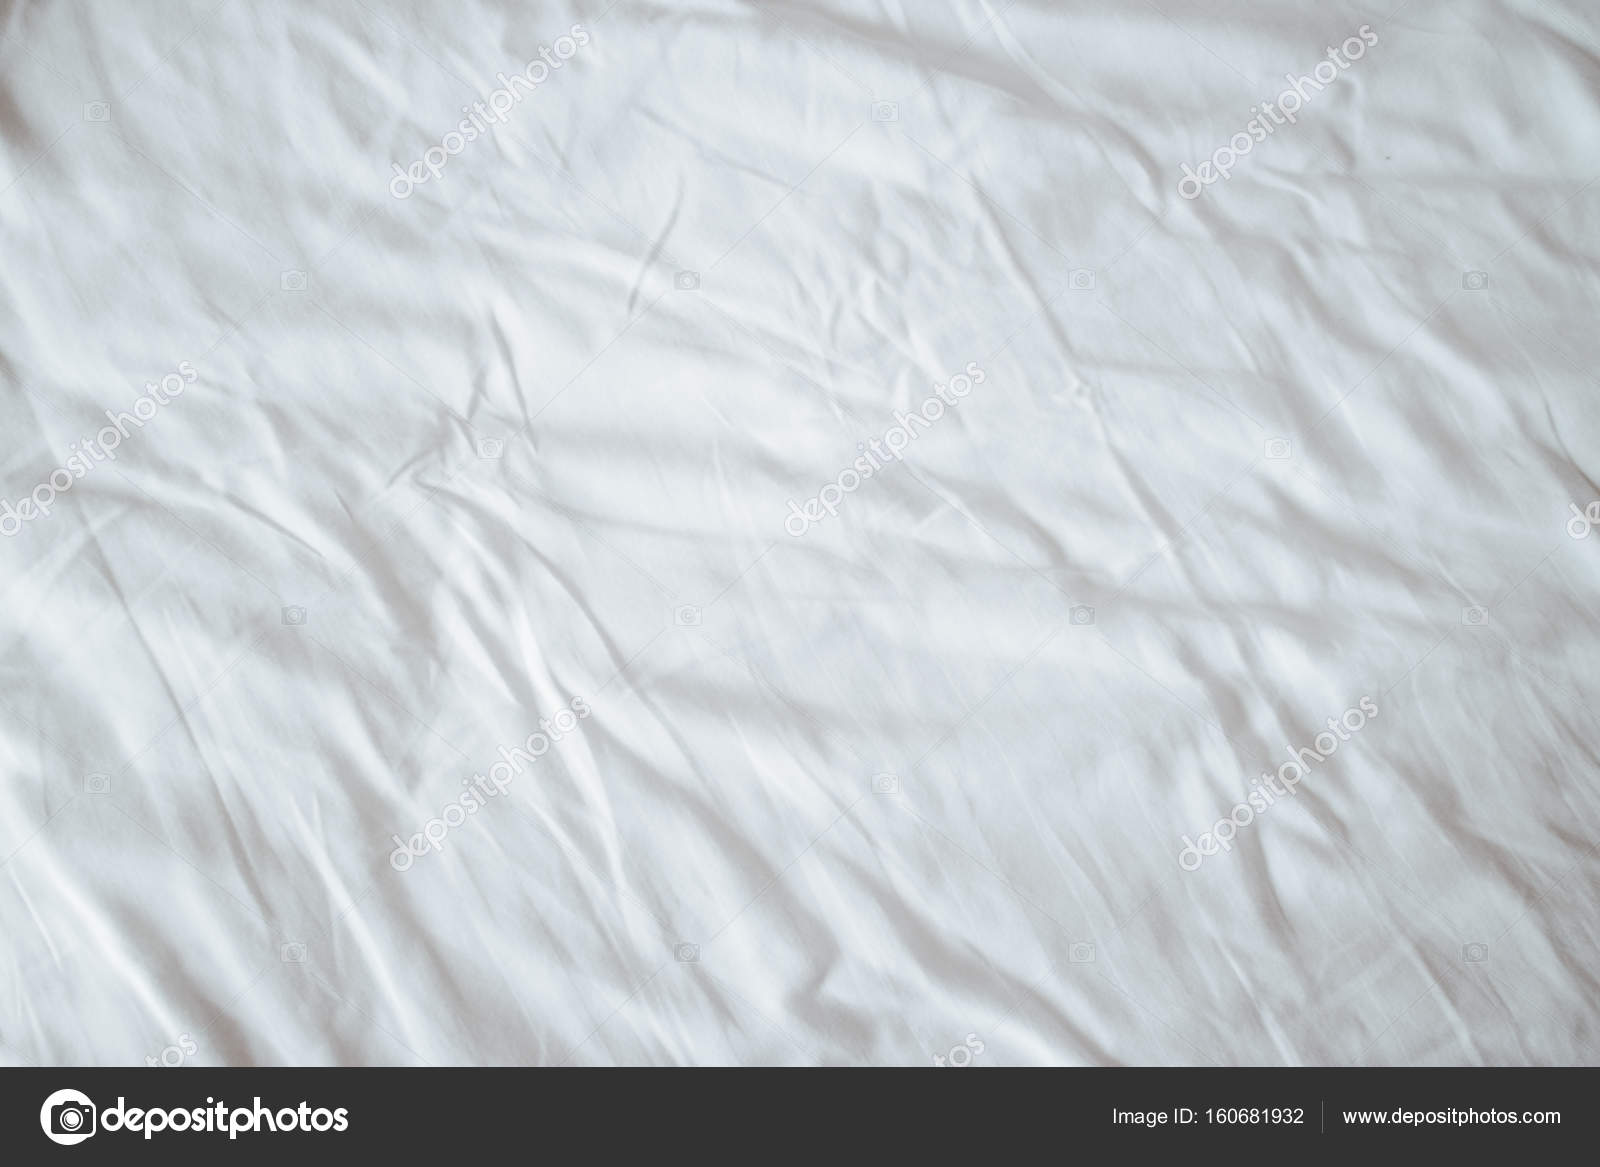 bed sheets texture. Crumpled Bed Sheets Texture \u2014 Stock Photo